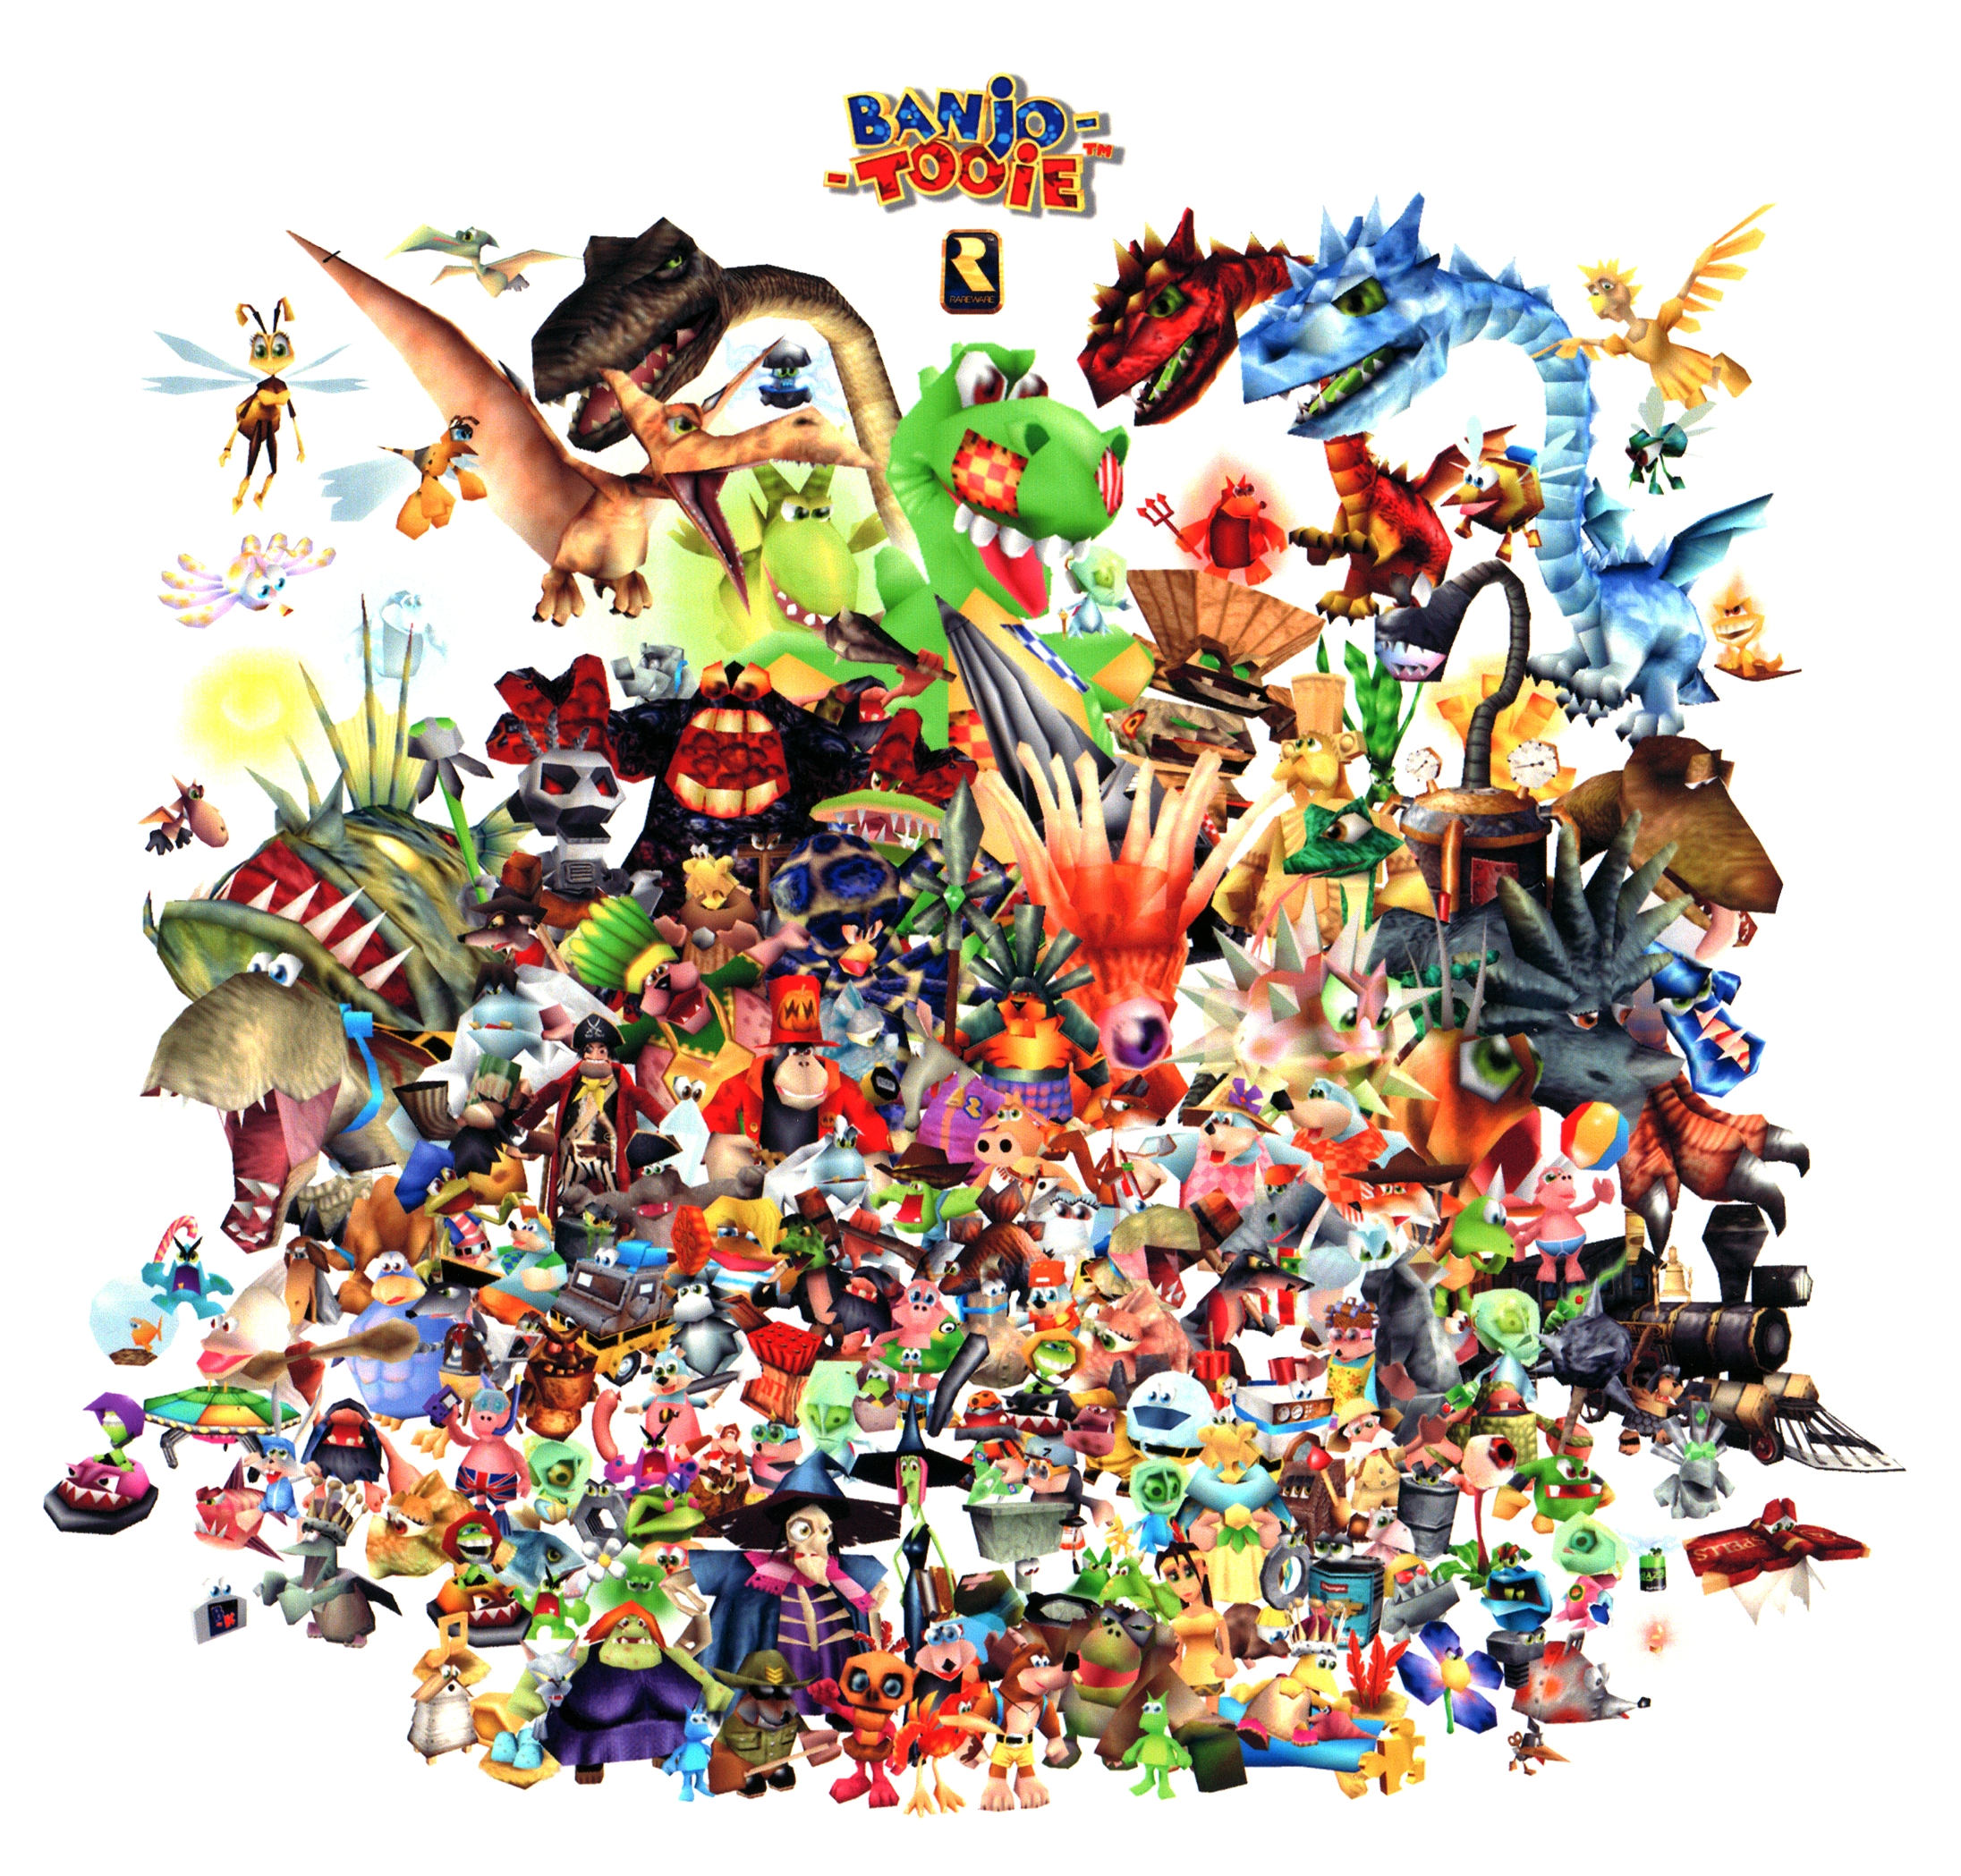 Banjo-Tooie - The Banjo-Kazooie Wiki - Banjo-Kazooie, Nuts and Bolts